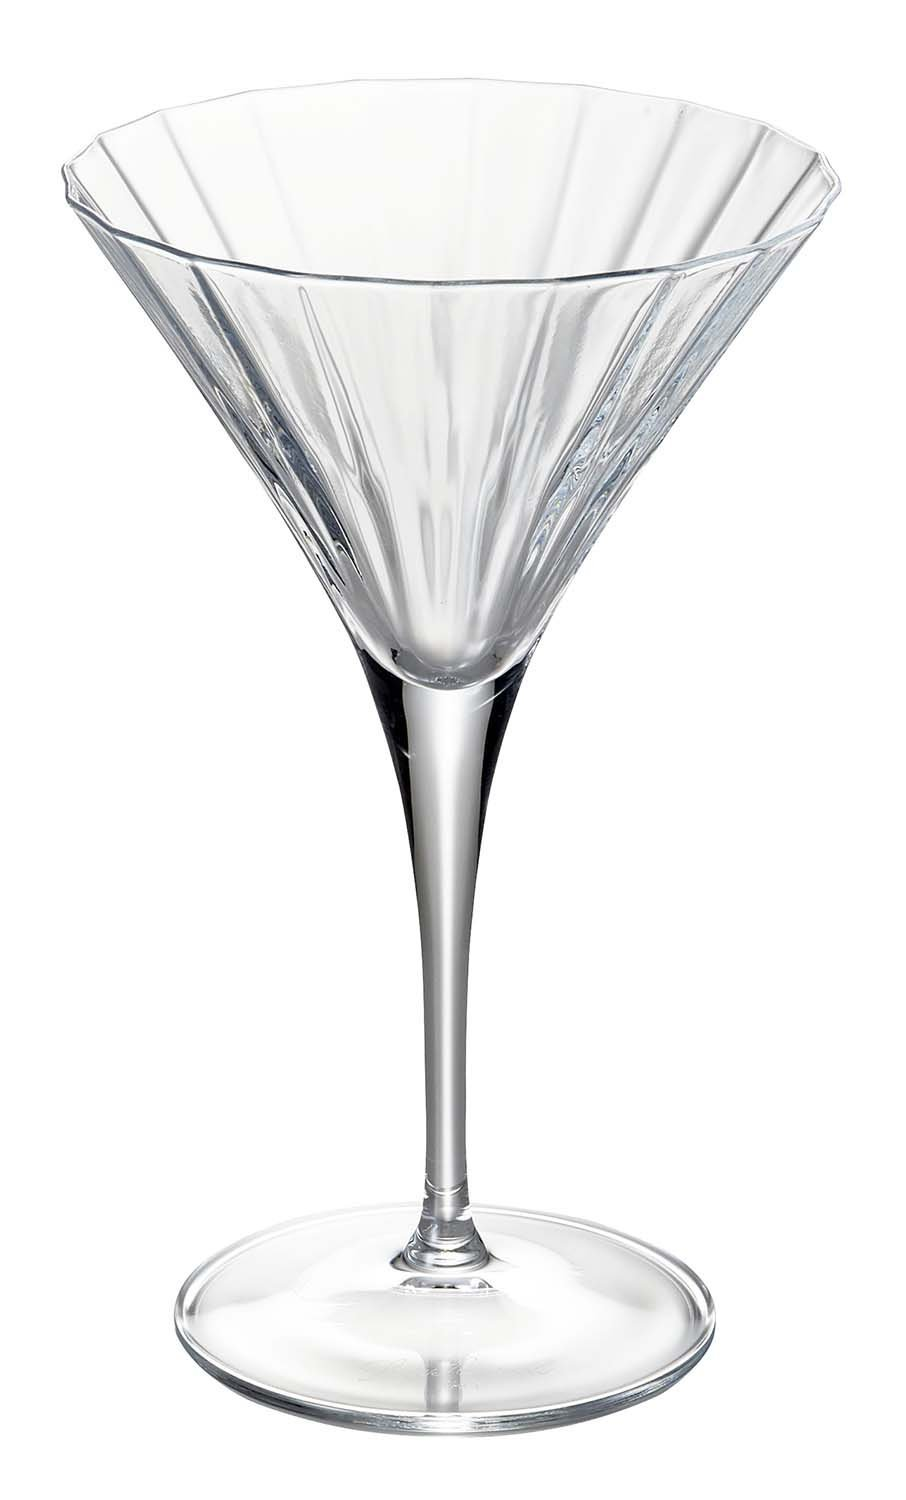 Luigi Bormioli Bach Martini Glasses, 8.75 oz, Set of 4